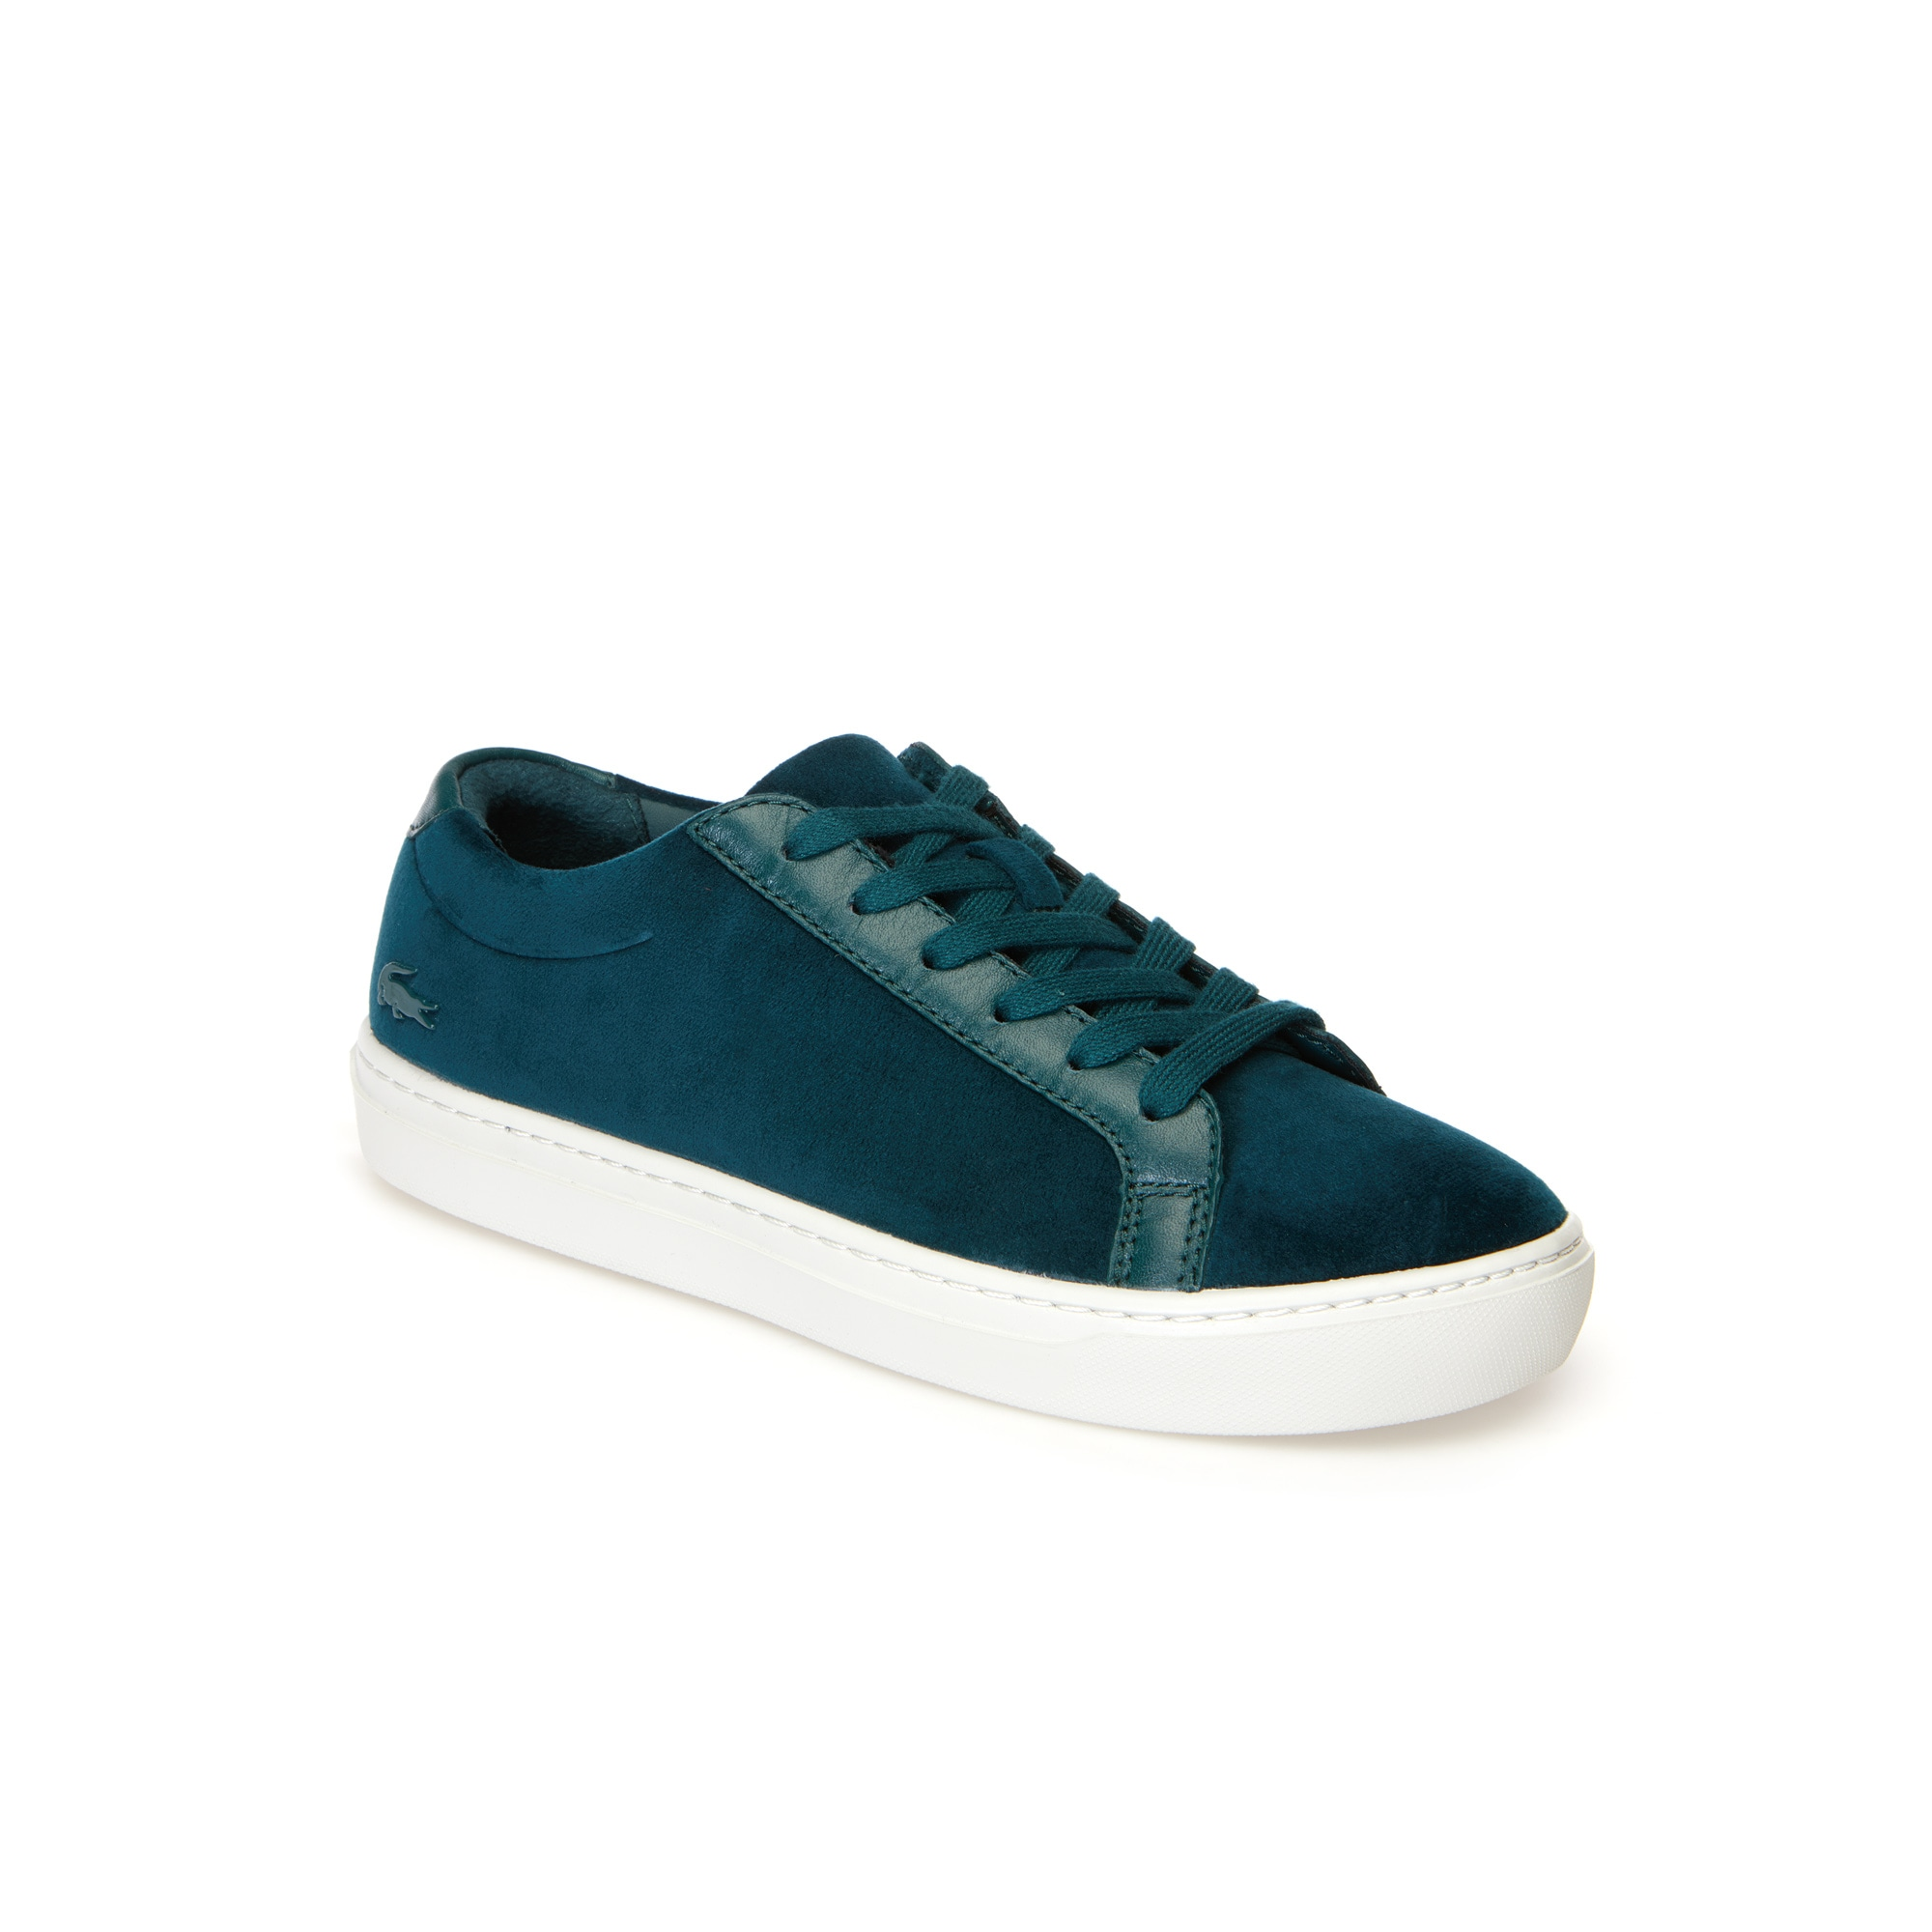 Women's L.12.12 Light-WT Velvet and Leather Trainers